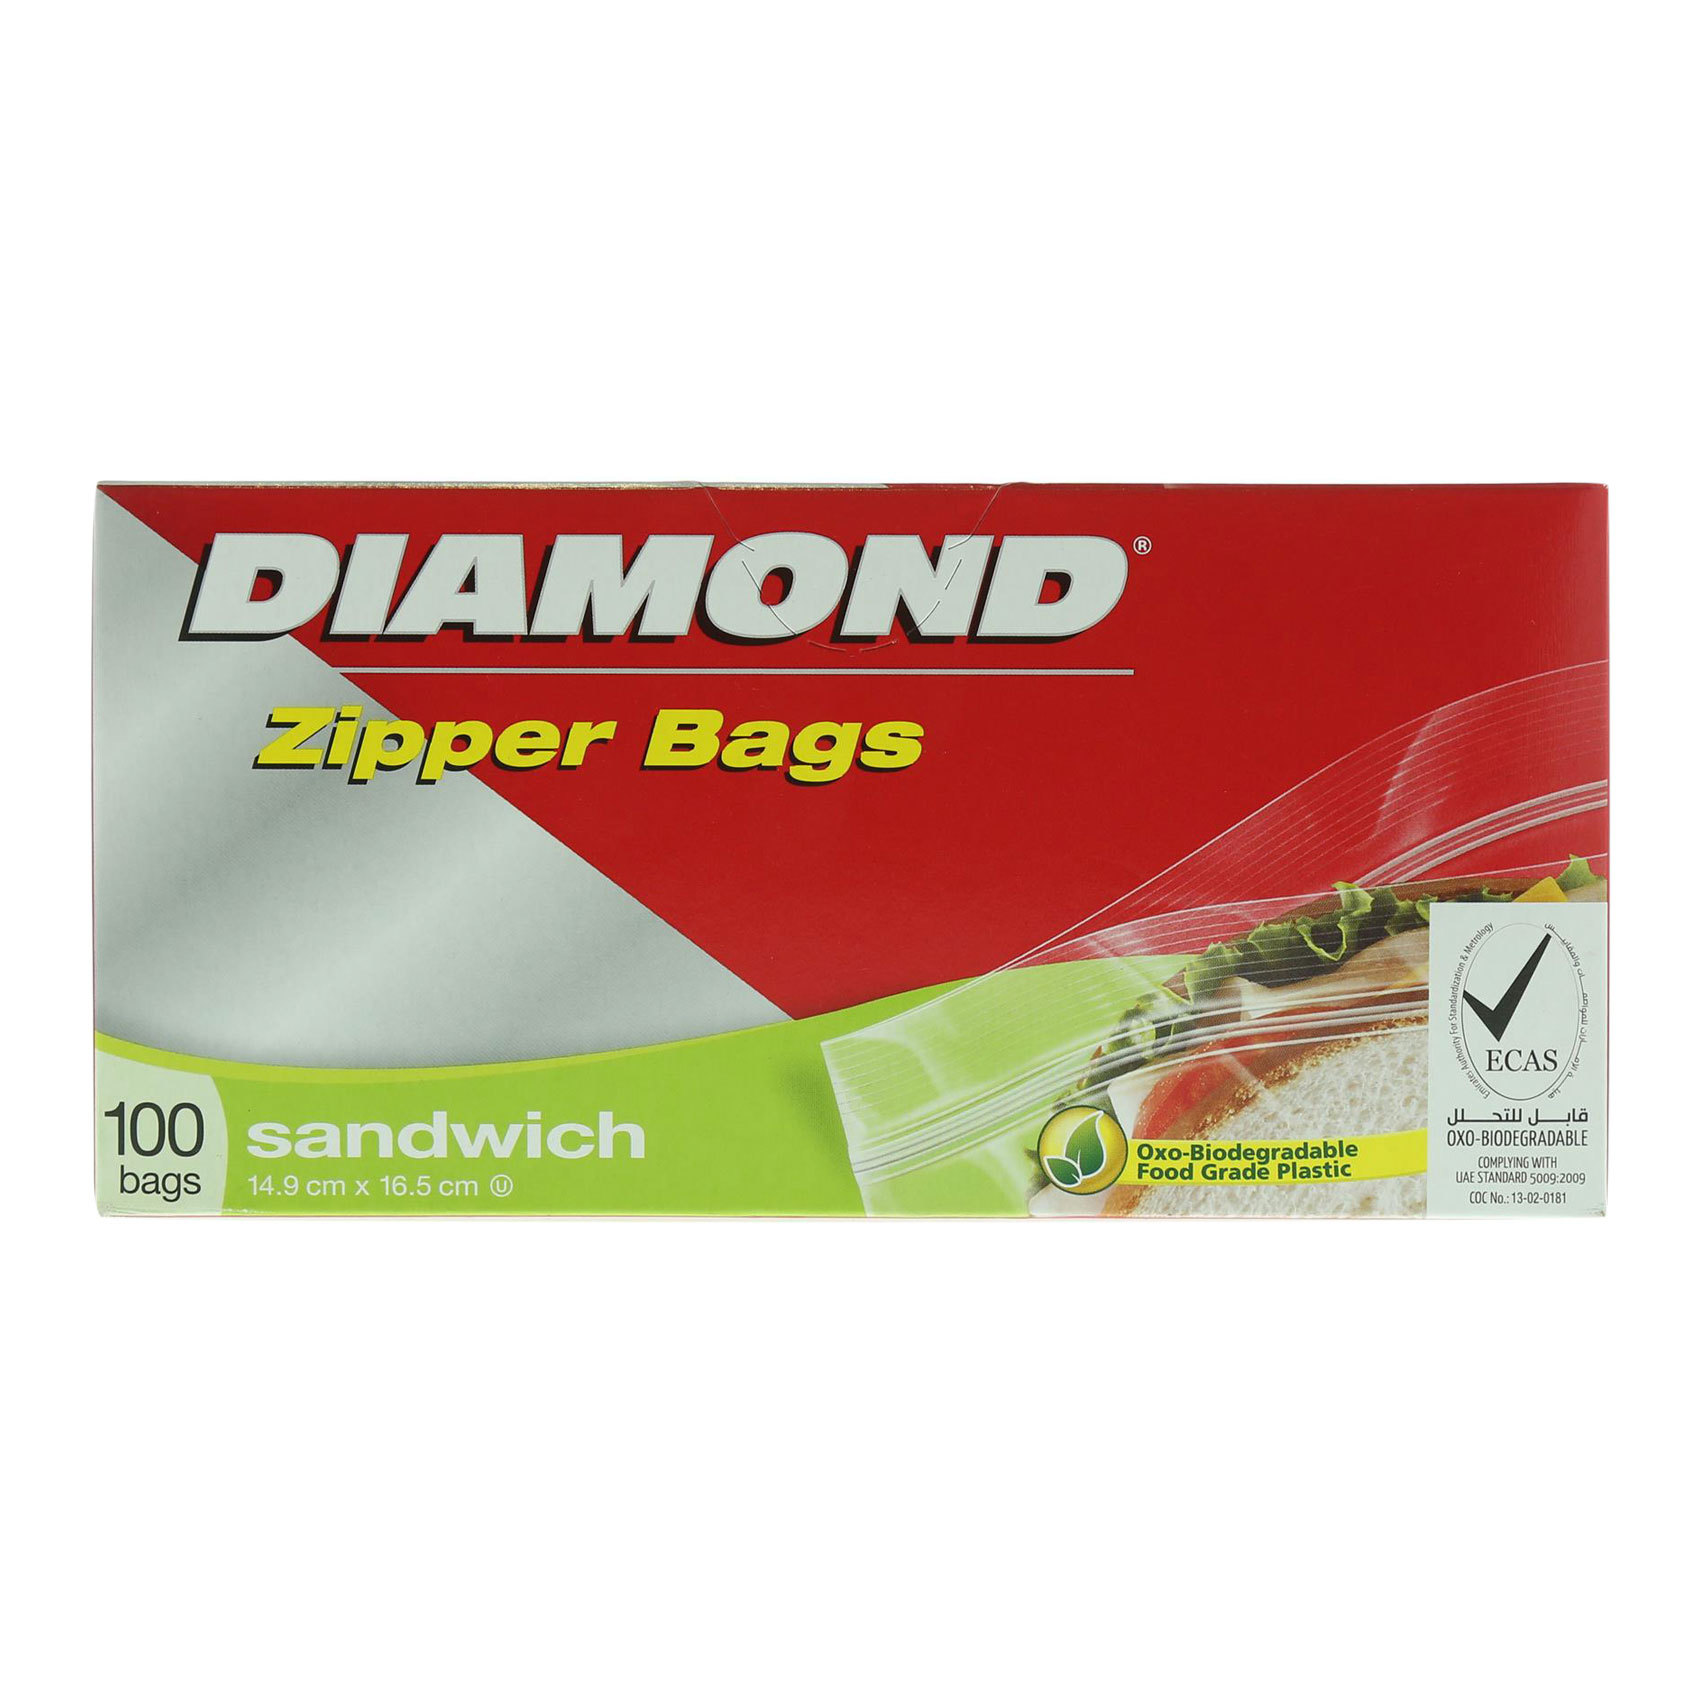 DIAMOND SDW BAGS ZIPPER 12X100S